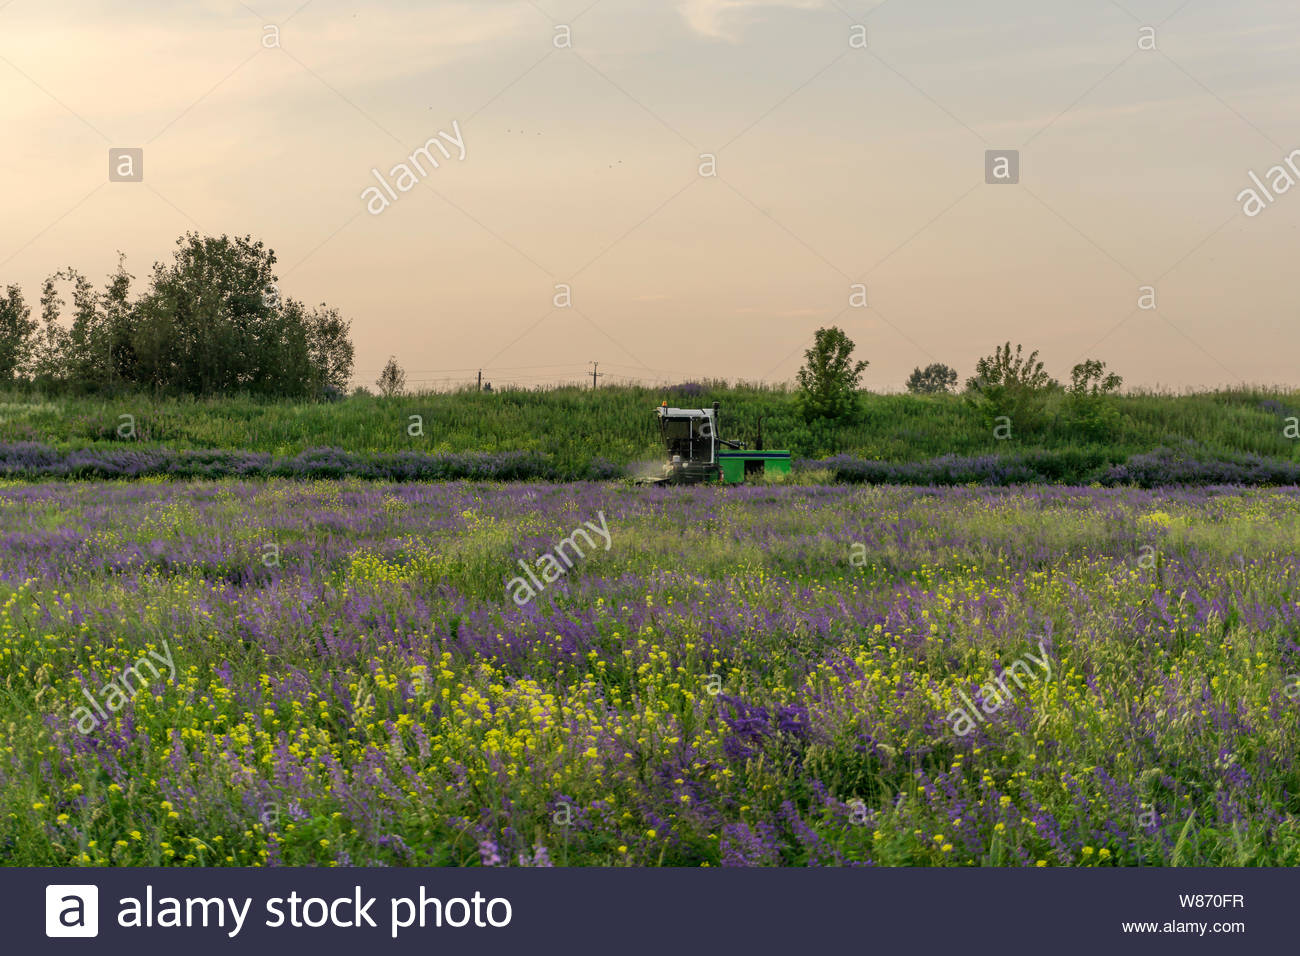 pastoral landscape with a flowering meadow and a machine for 1300x956